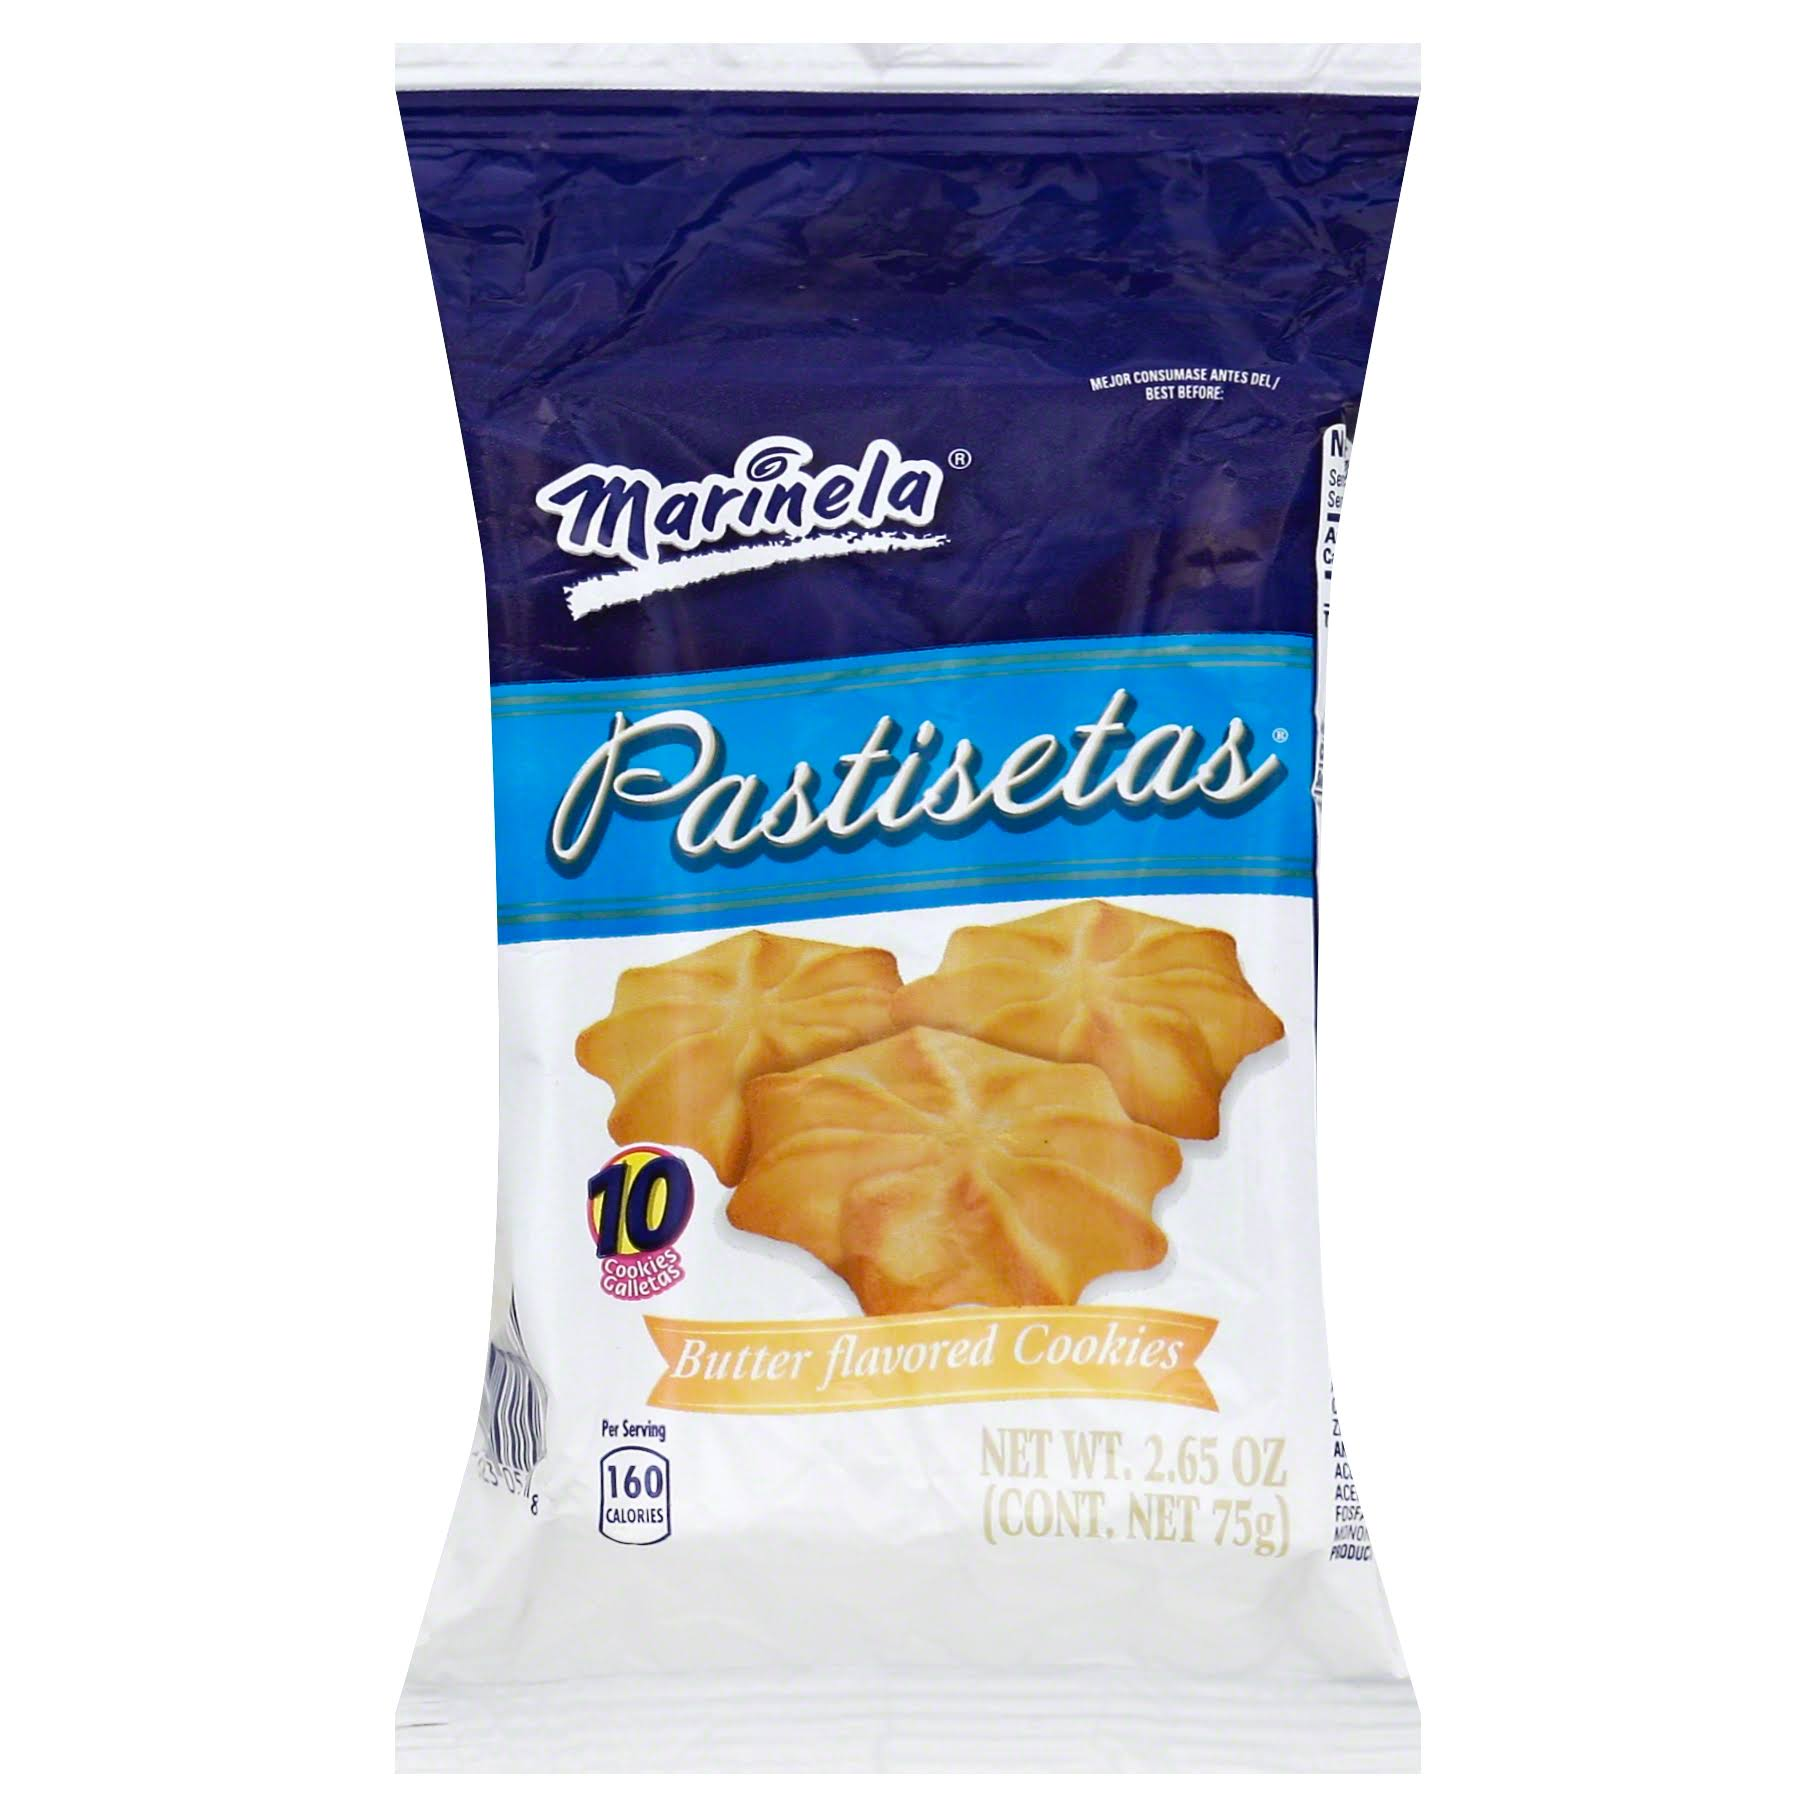 Marinela Pastisetas Butter Flavored Cookies